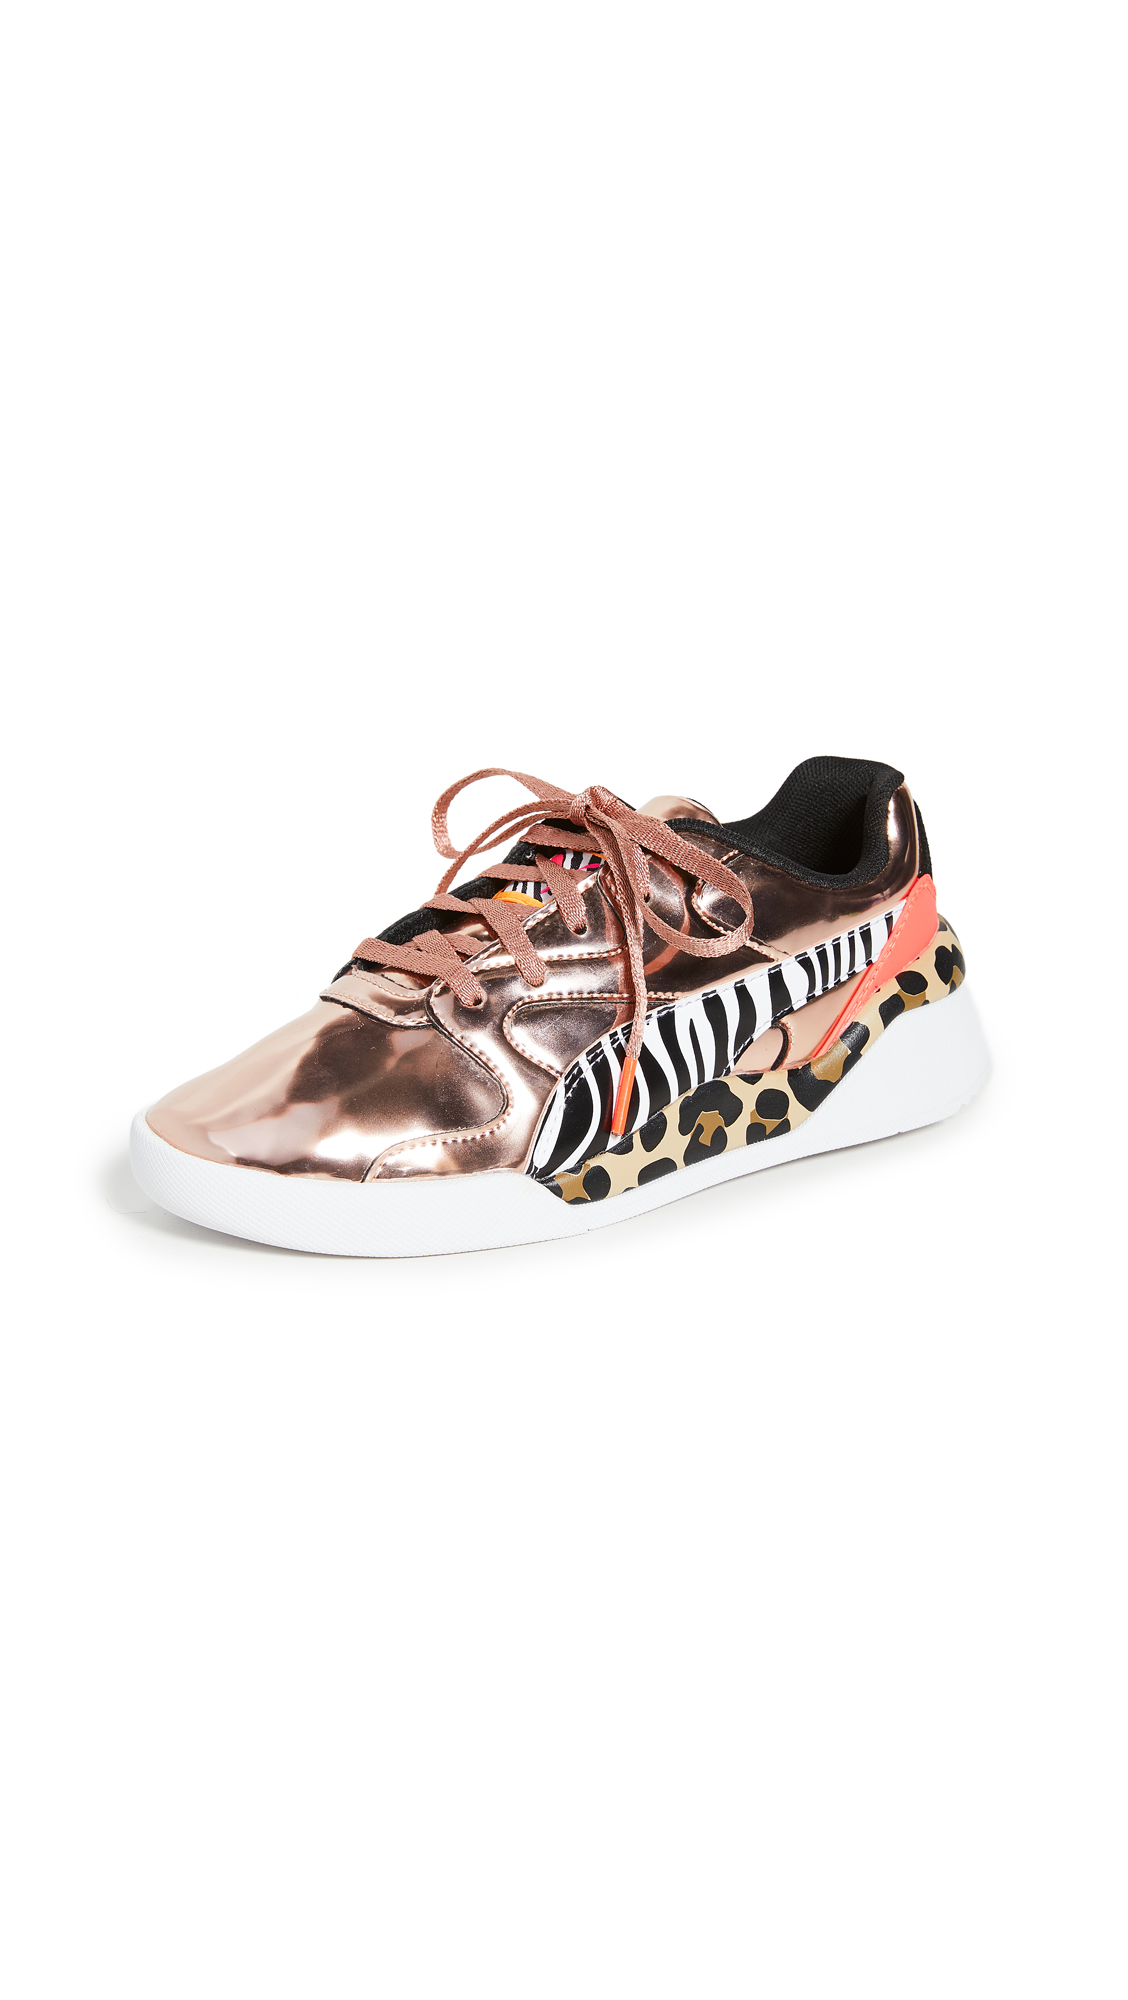 PUMA Aeon Sophia Webster Sneakers - 50% Off Sale